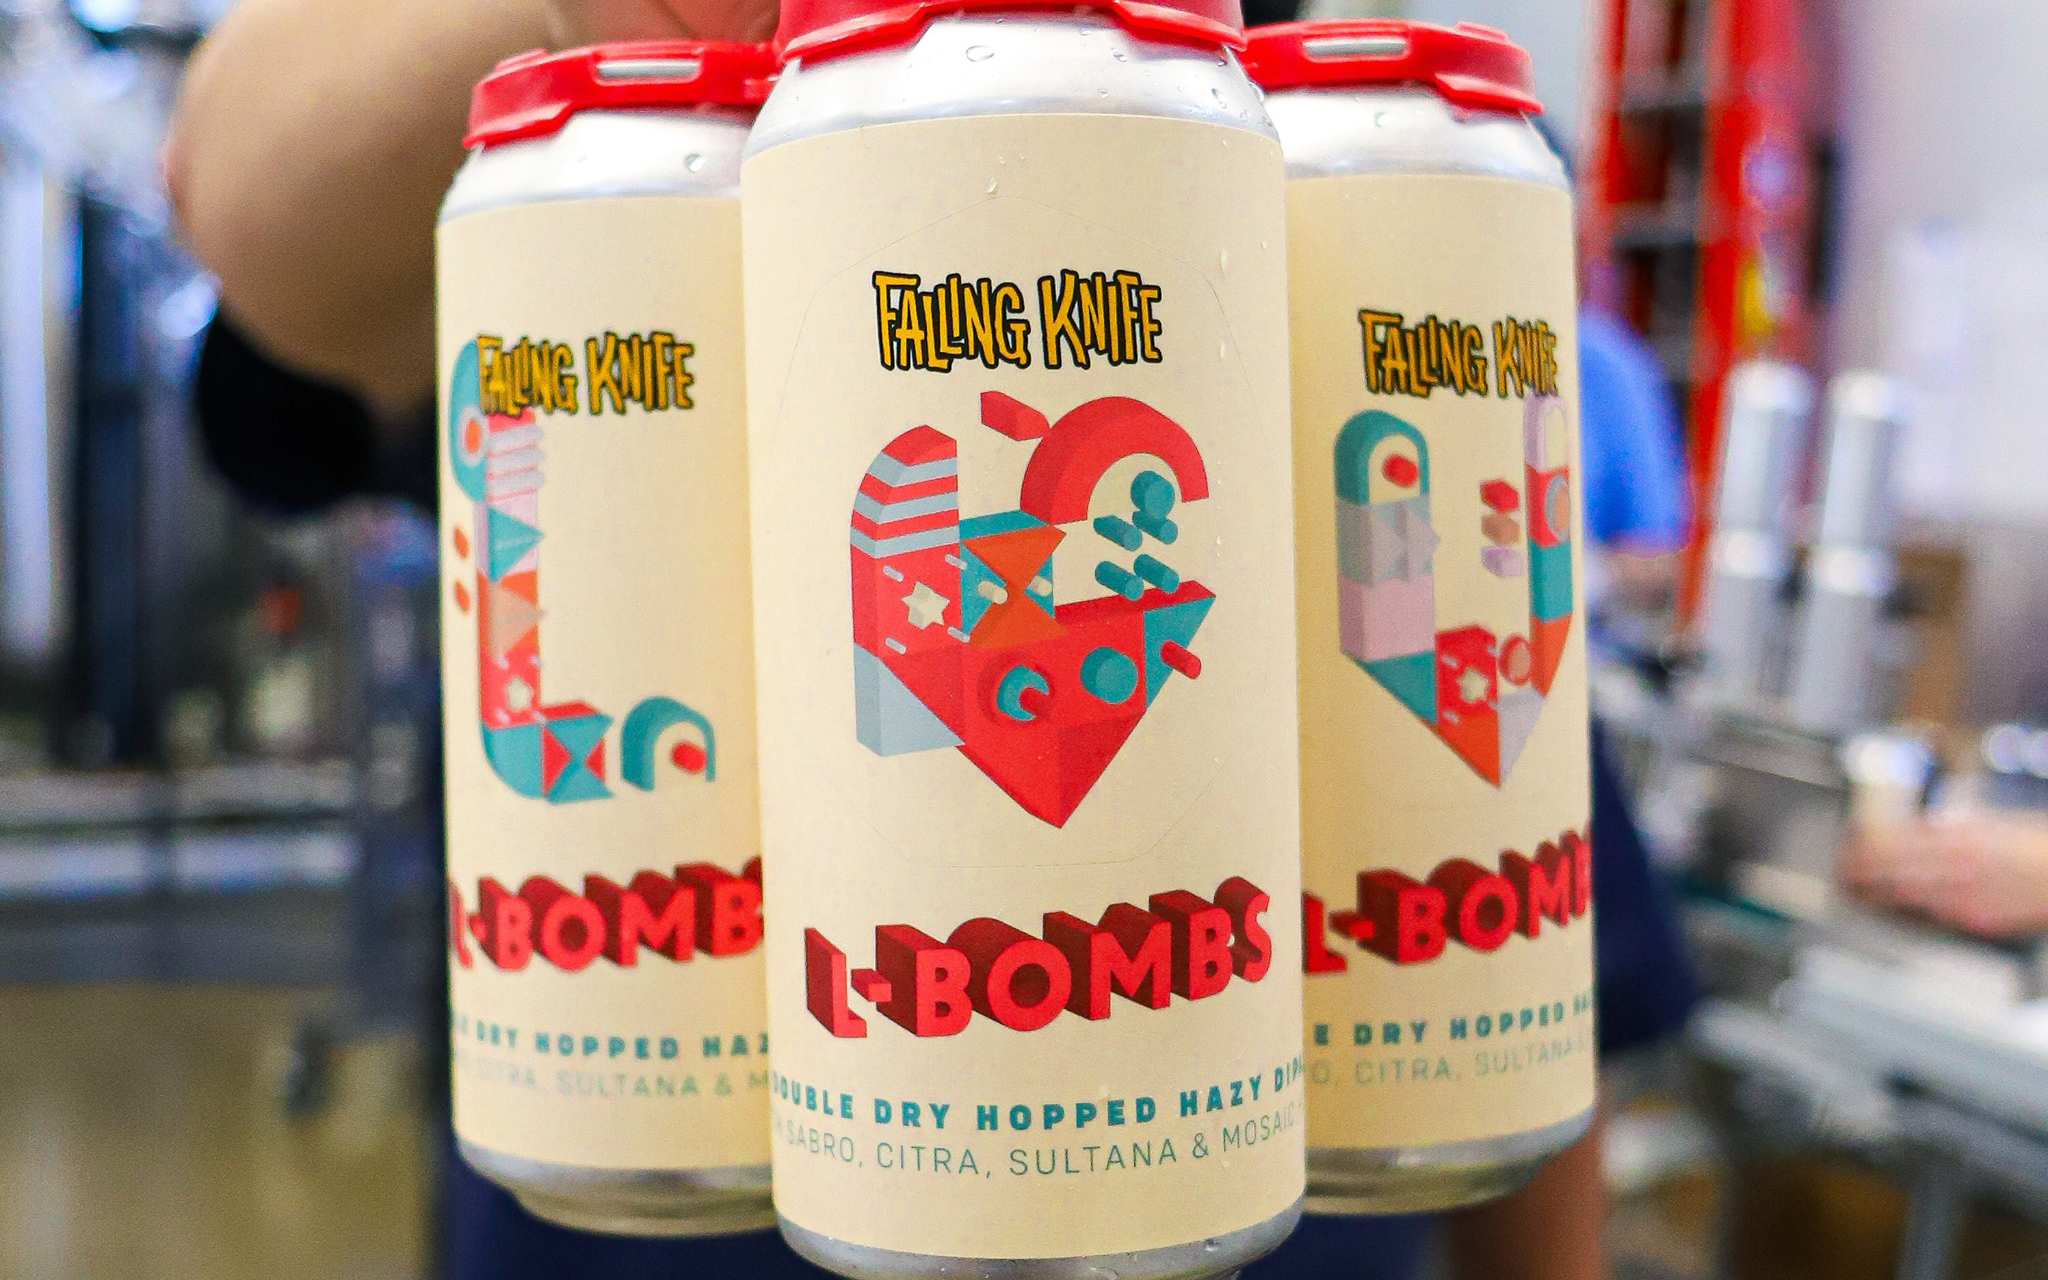 Falling Knife Brewing Company L-Bombs DDH Hazy DIPA Boats are a fantastic location for true love to bloom, just look at Jack and Rose in Titanic. In Beer Paddler's case, you'll be falling in love with this pungent and tropical IPA from Falling Knife in Northeast Minneapolis. Featuring a swoonworthy mix of Denali, Citra, Mosaic and Sabro, this handsome hazy is guaranteed to turn the Anson and Betsey into a pair of love boats.